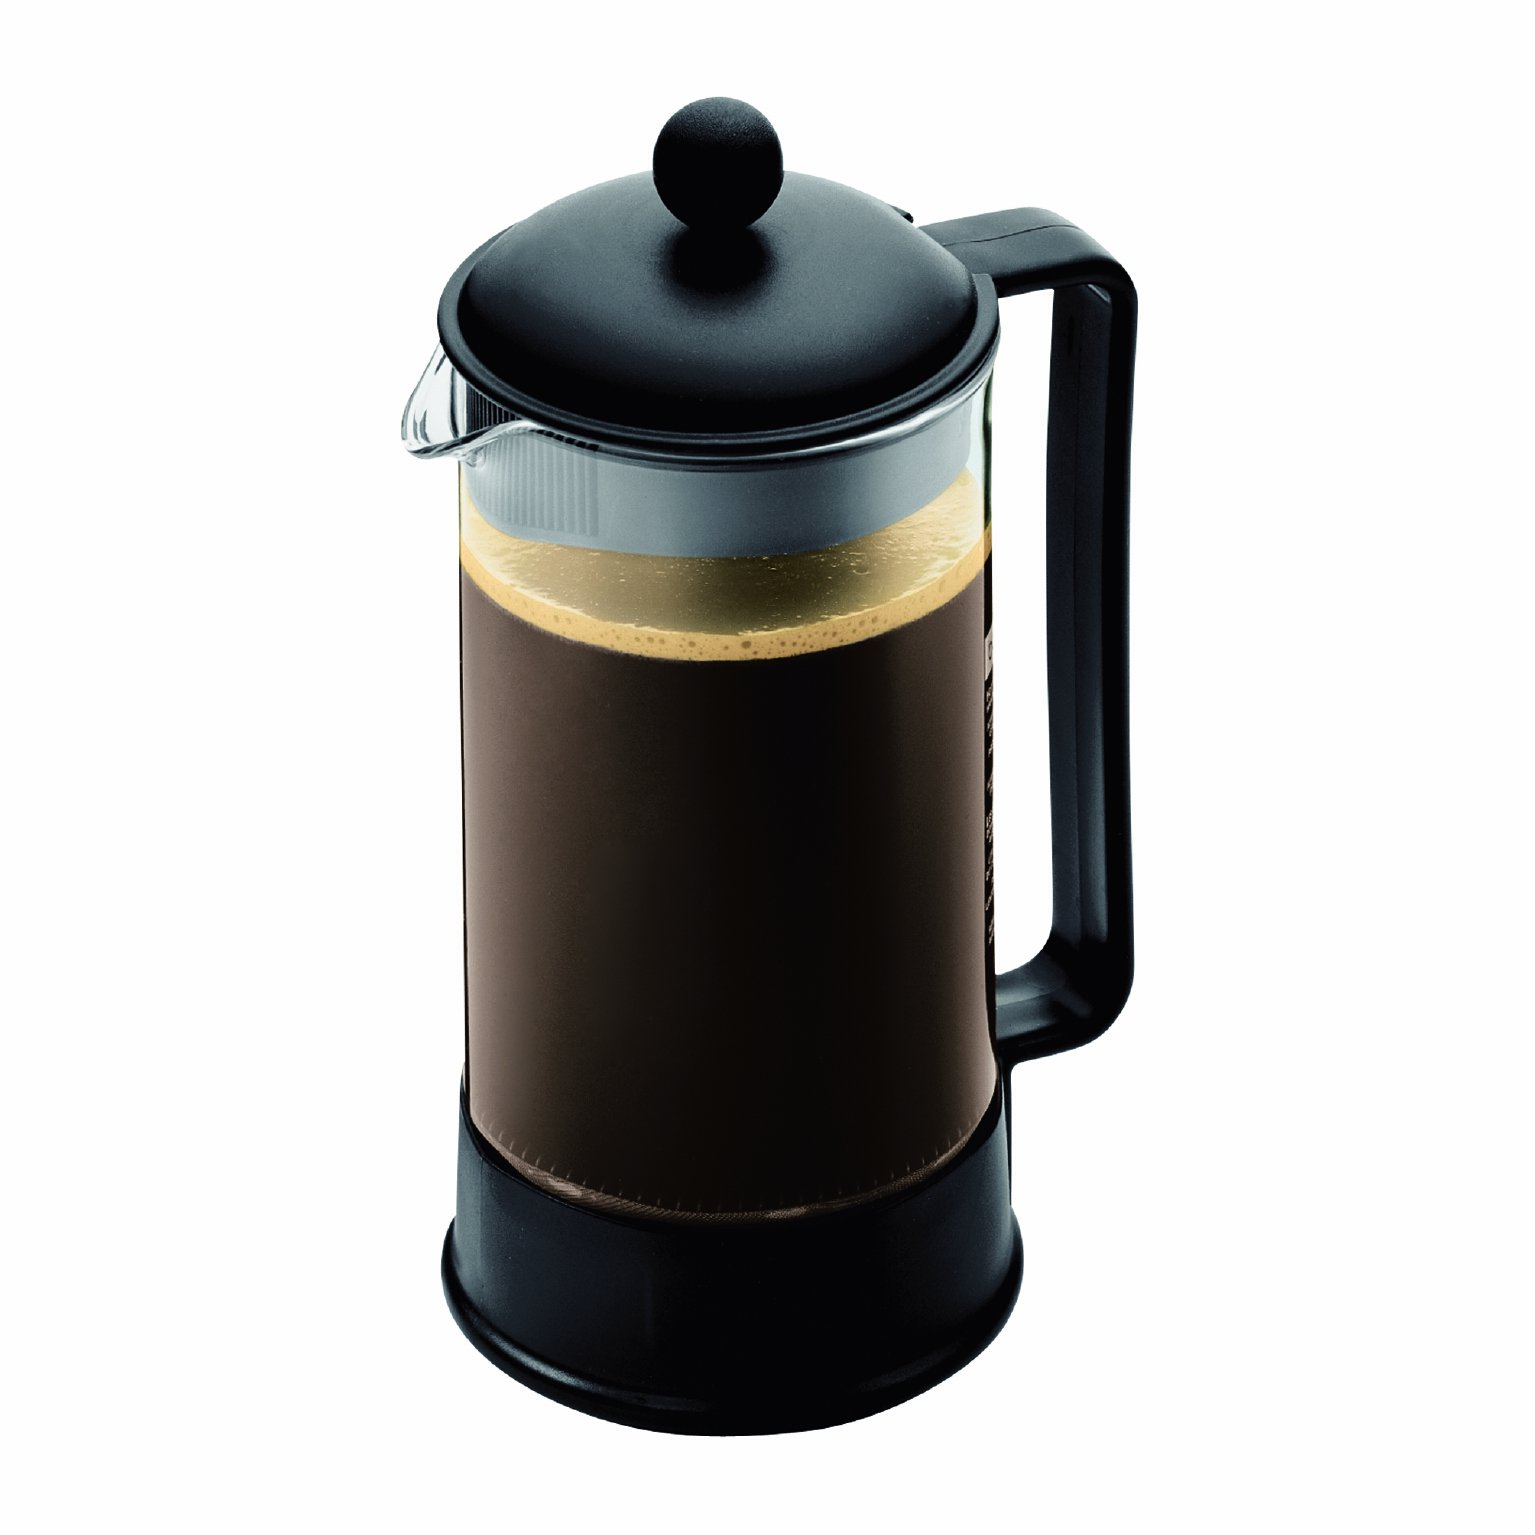 French Press Coffee Maker Images : Bodum Brazil 8 cup French Press Coffee Maker Kitchen Tools List